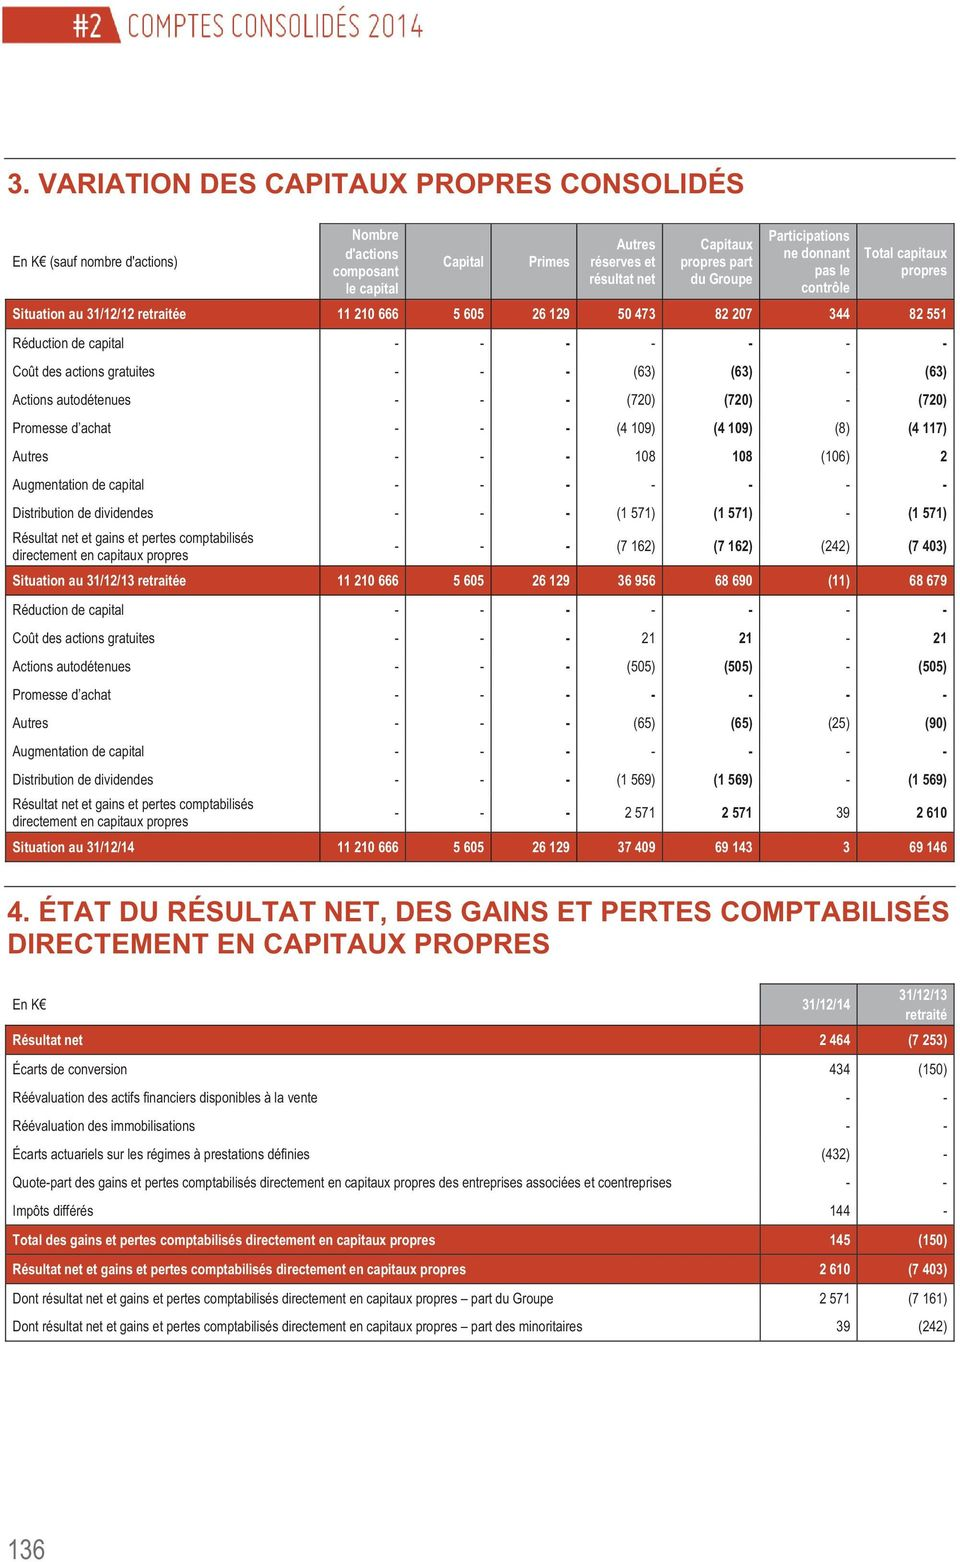 (63) Actions autodétenues - - - (720) (720) - (720) Promesse d achat - - - (4 109) (4 109) (8) (4 117) - - - 108 108 (106) 2 Augmentation de capital - - - - - - - Distribution de dividendes - - - (1